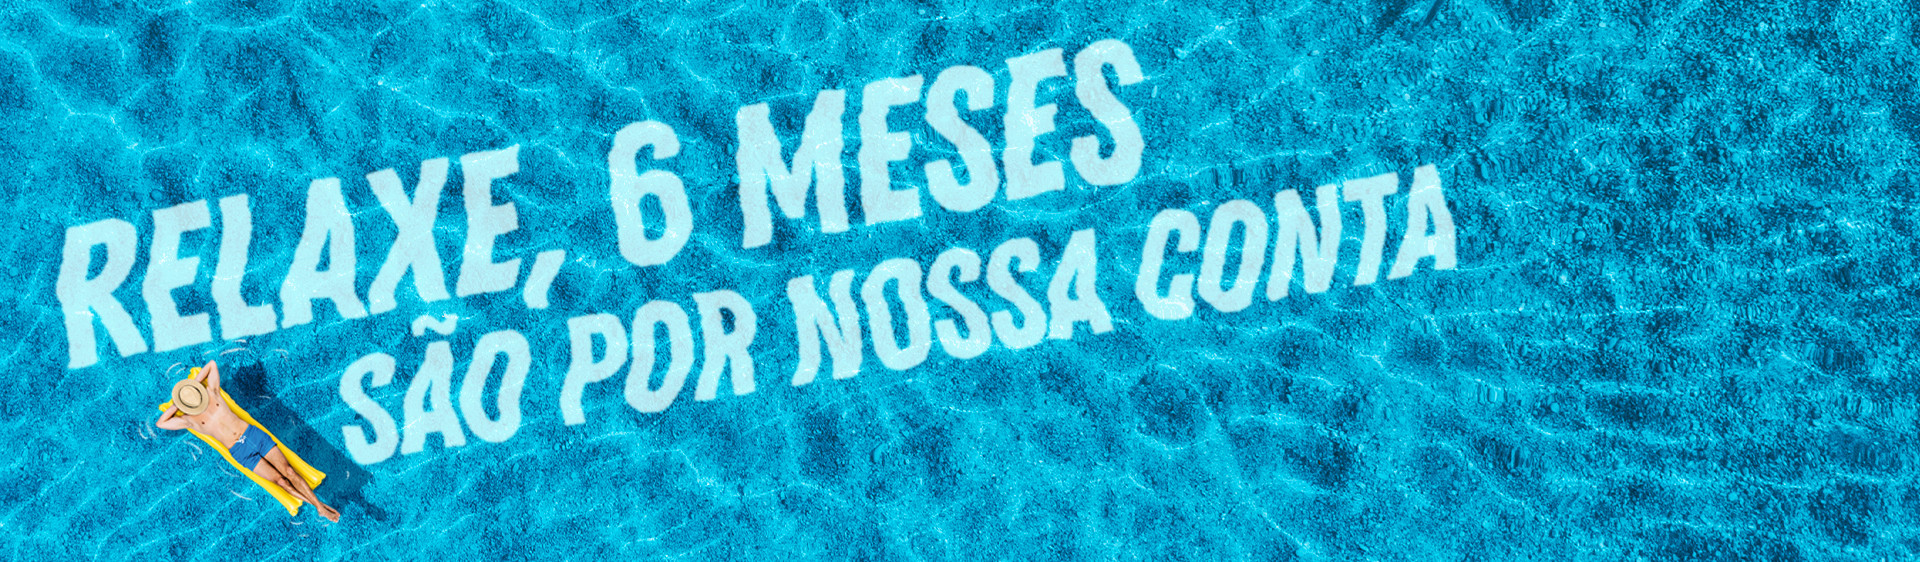 BANNER VERÃO